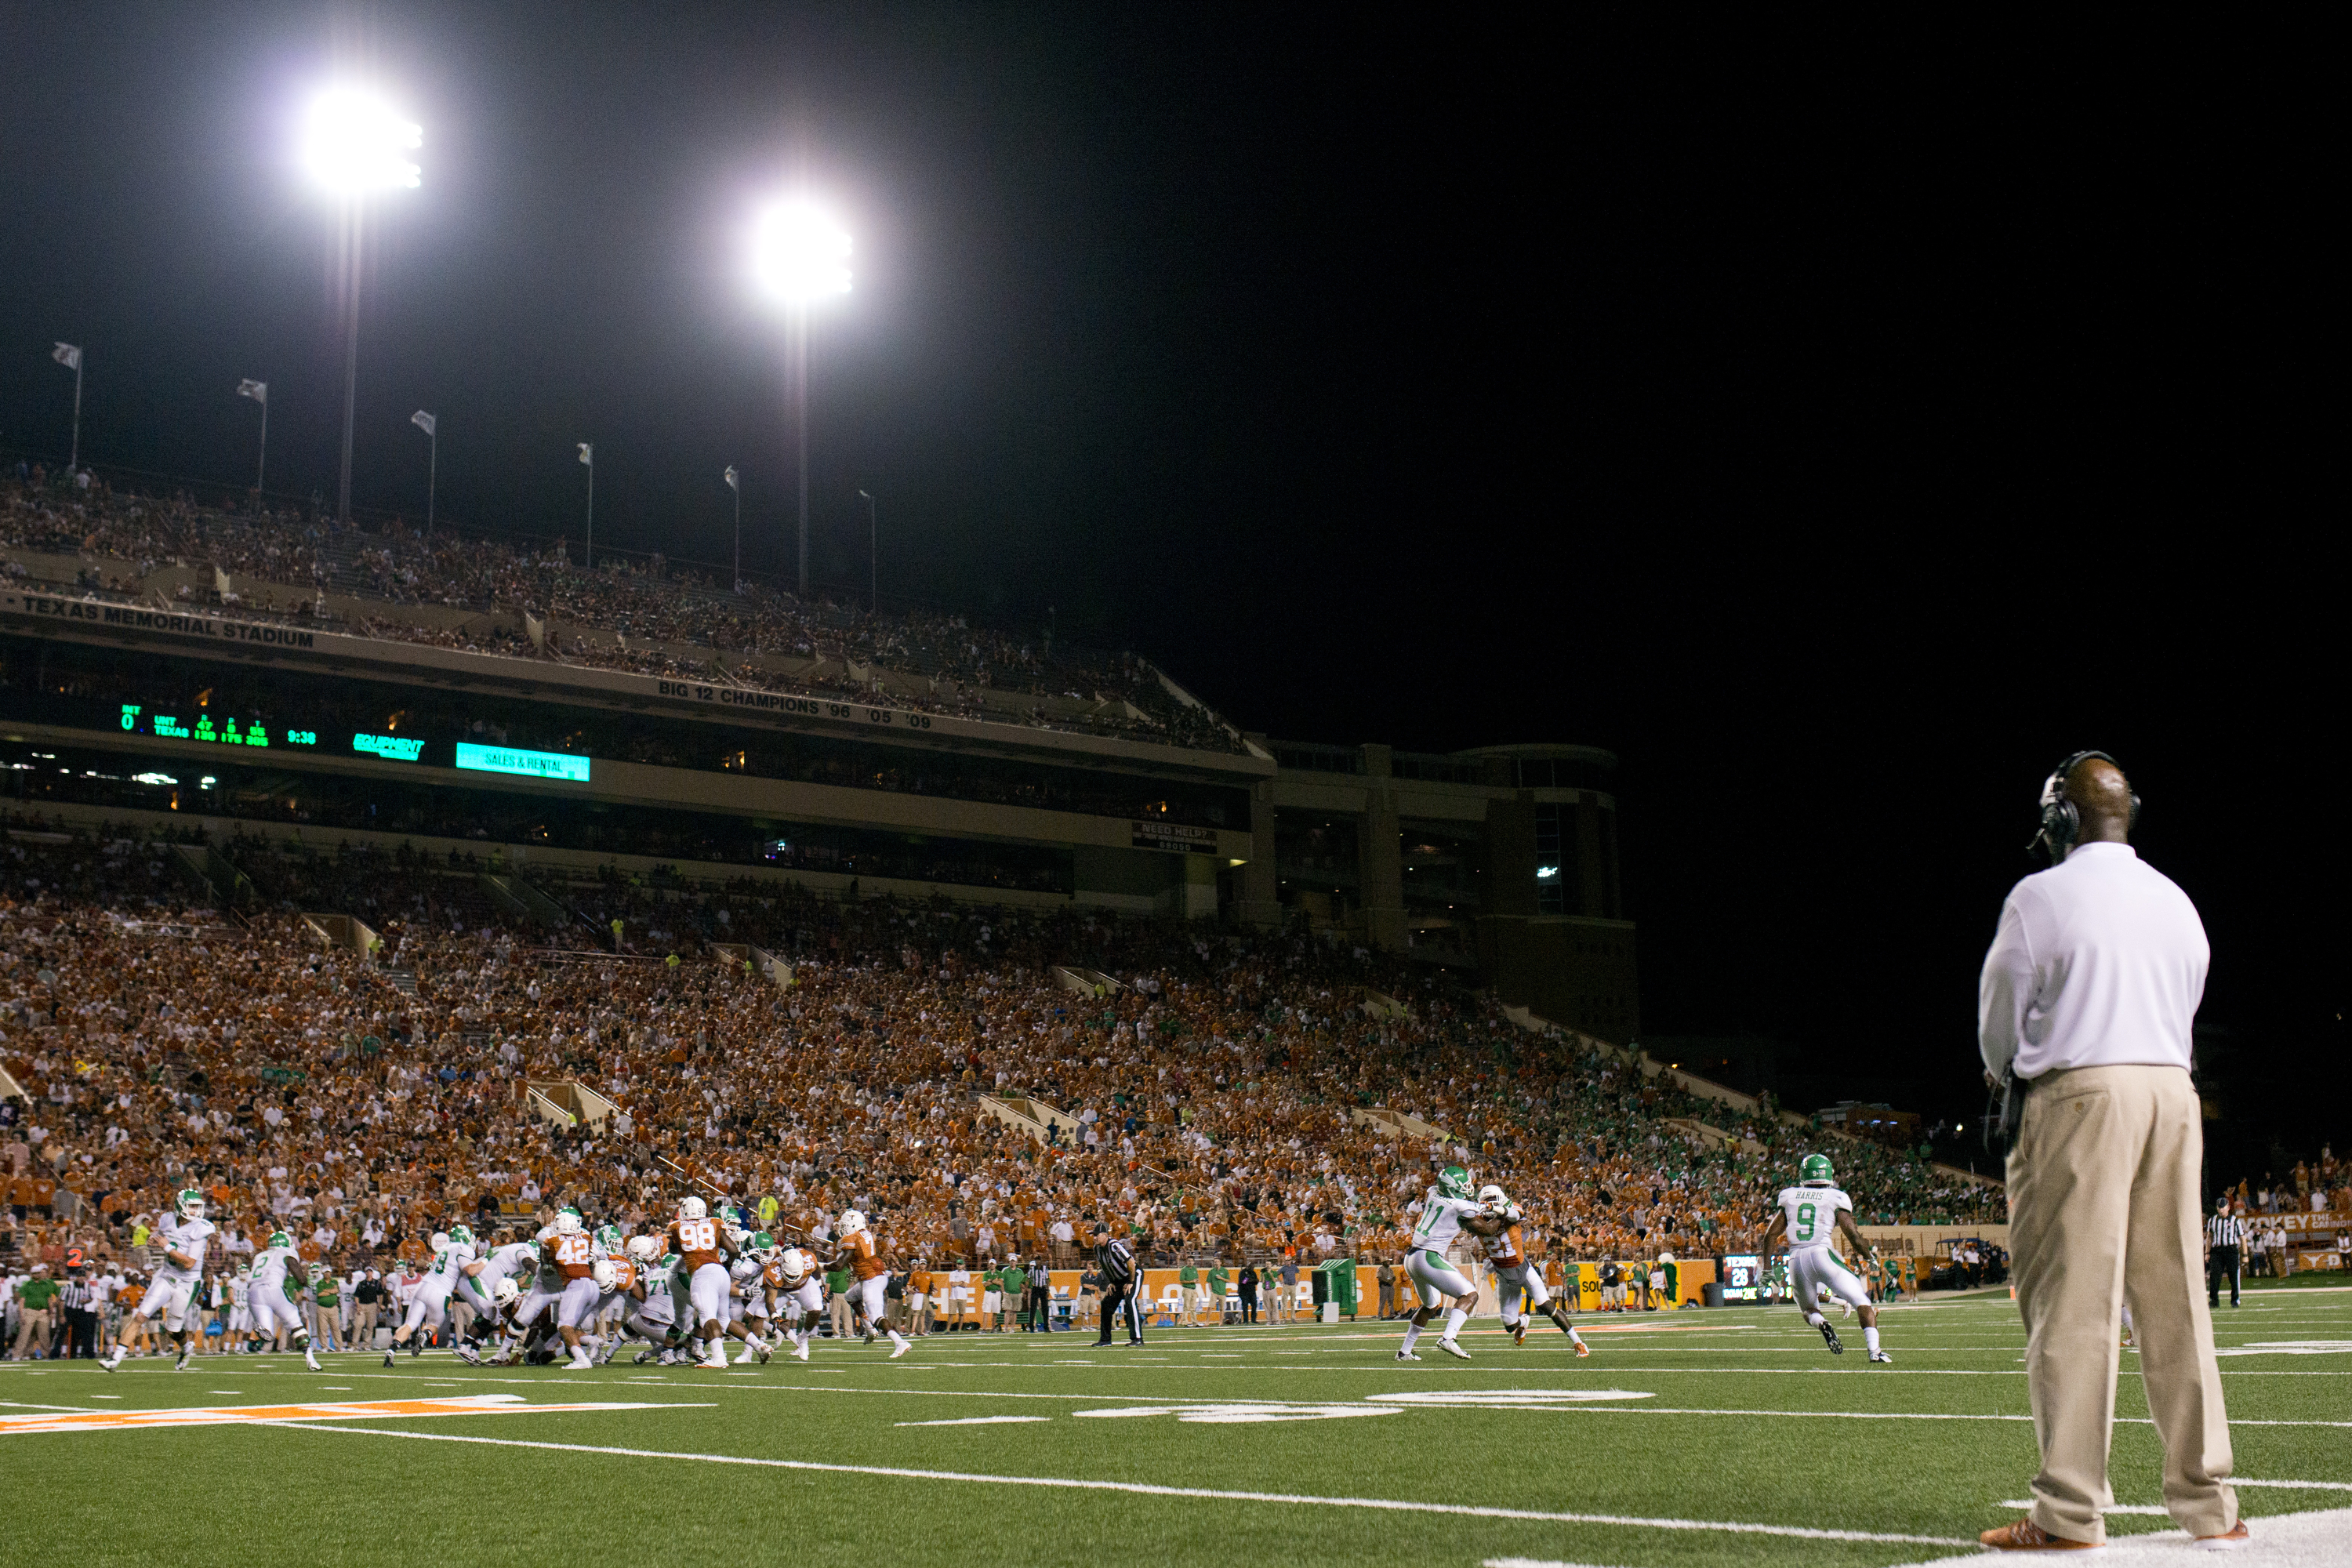 Texas Longhorns head coach Charlie Strong looks on against the North Texas Mean Green on August 30, 2014 at Darrell K Royal-Texas Memorial Stadium in Austin, Texas.